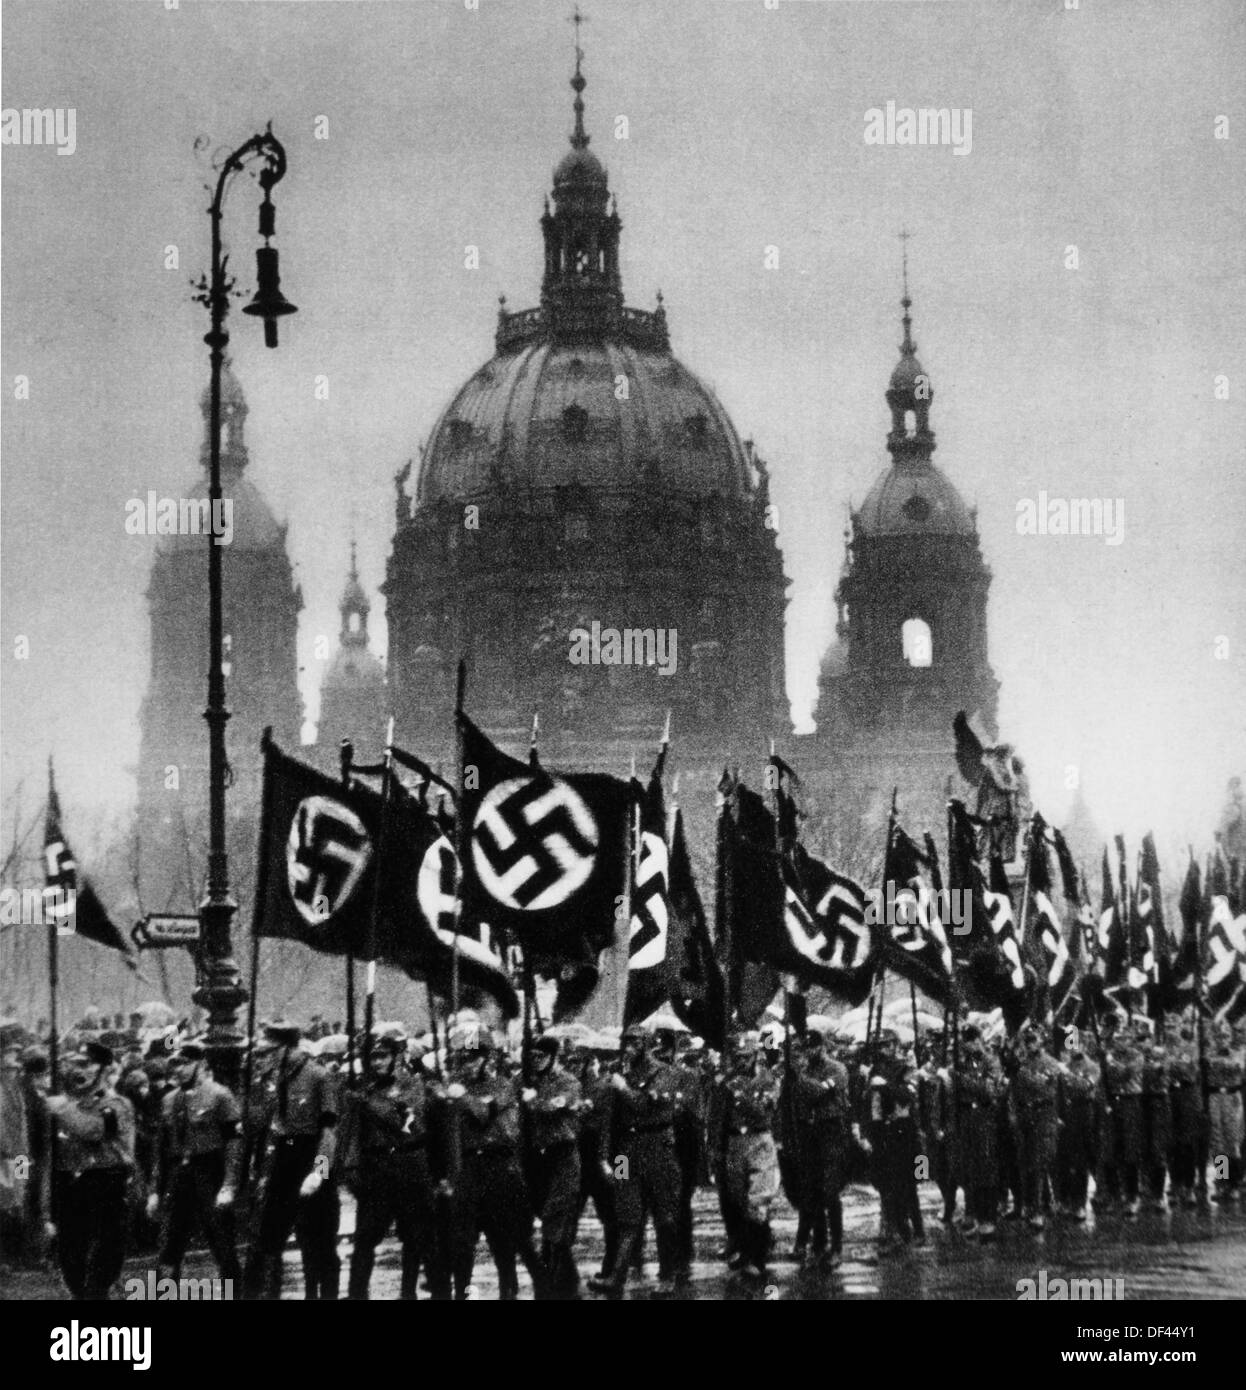 Nazi Funeral March, Berlin, Germany, January, 30, 1933 - Stock Image